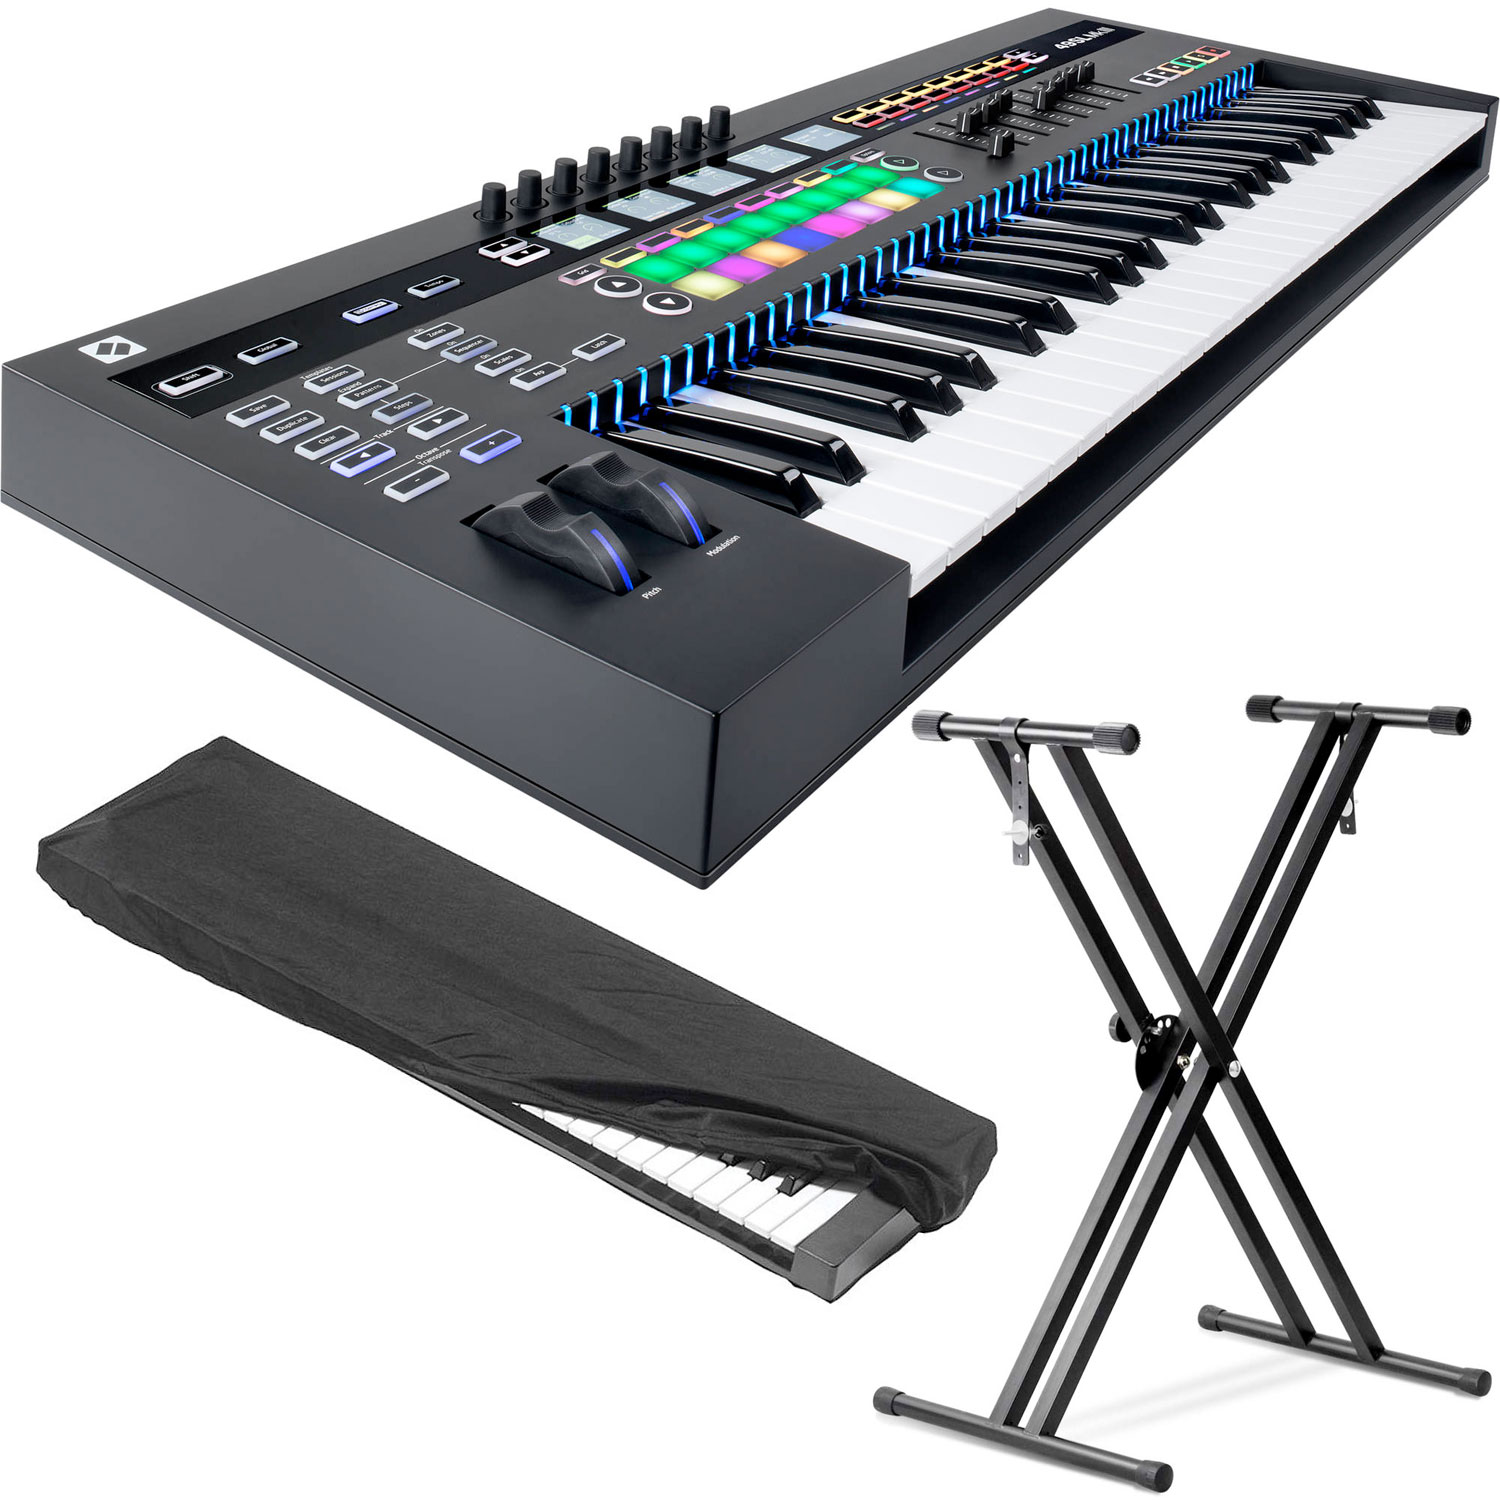 Details about Novation SL MkIII - MIDI 49-Note Keyboard Controller w/KKC-SM  Dust cover, Stand